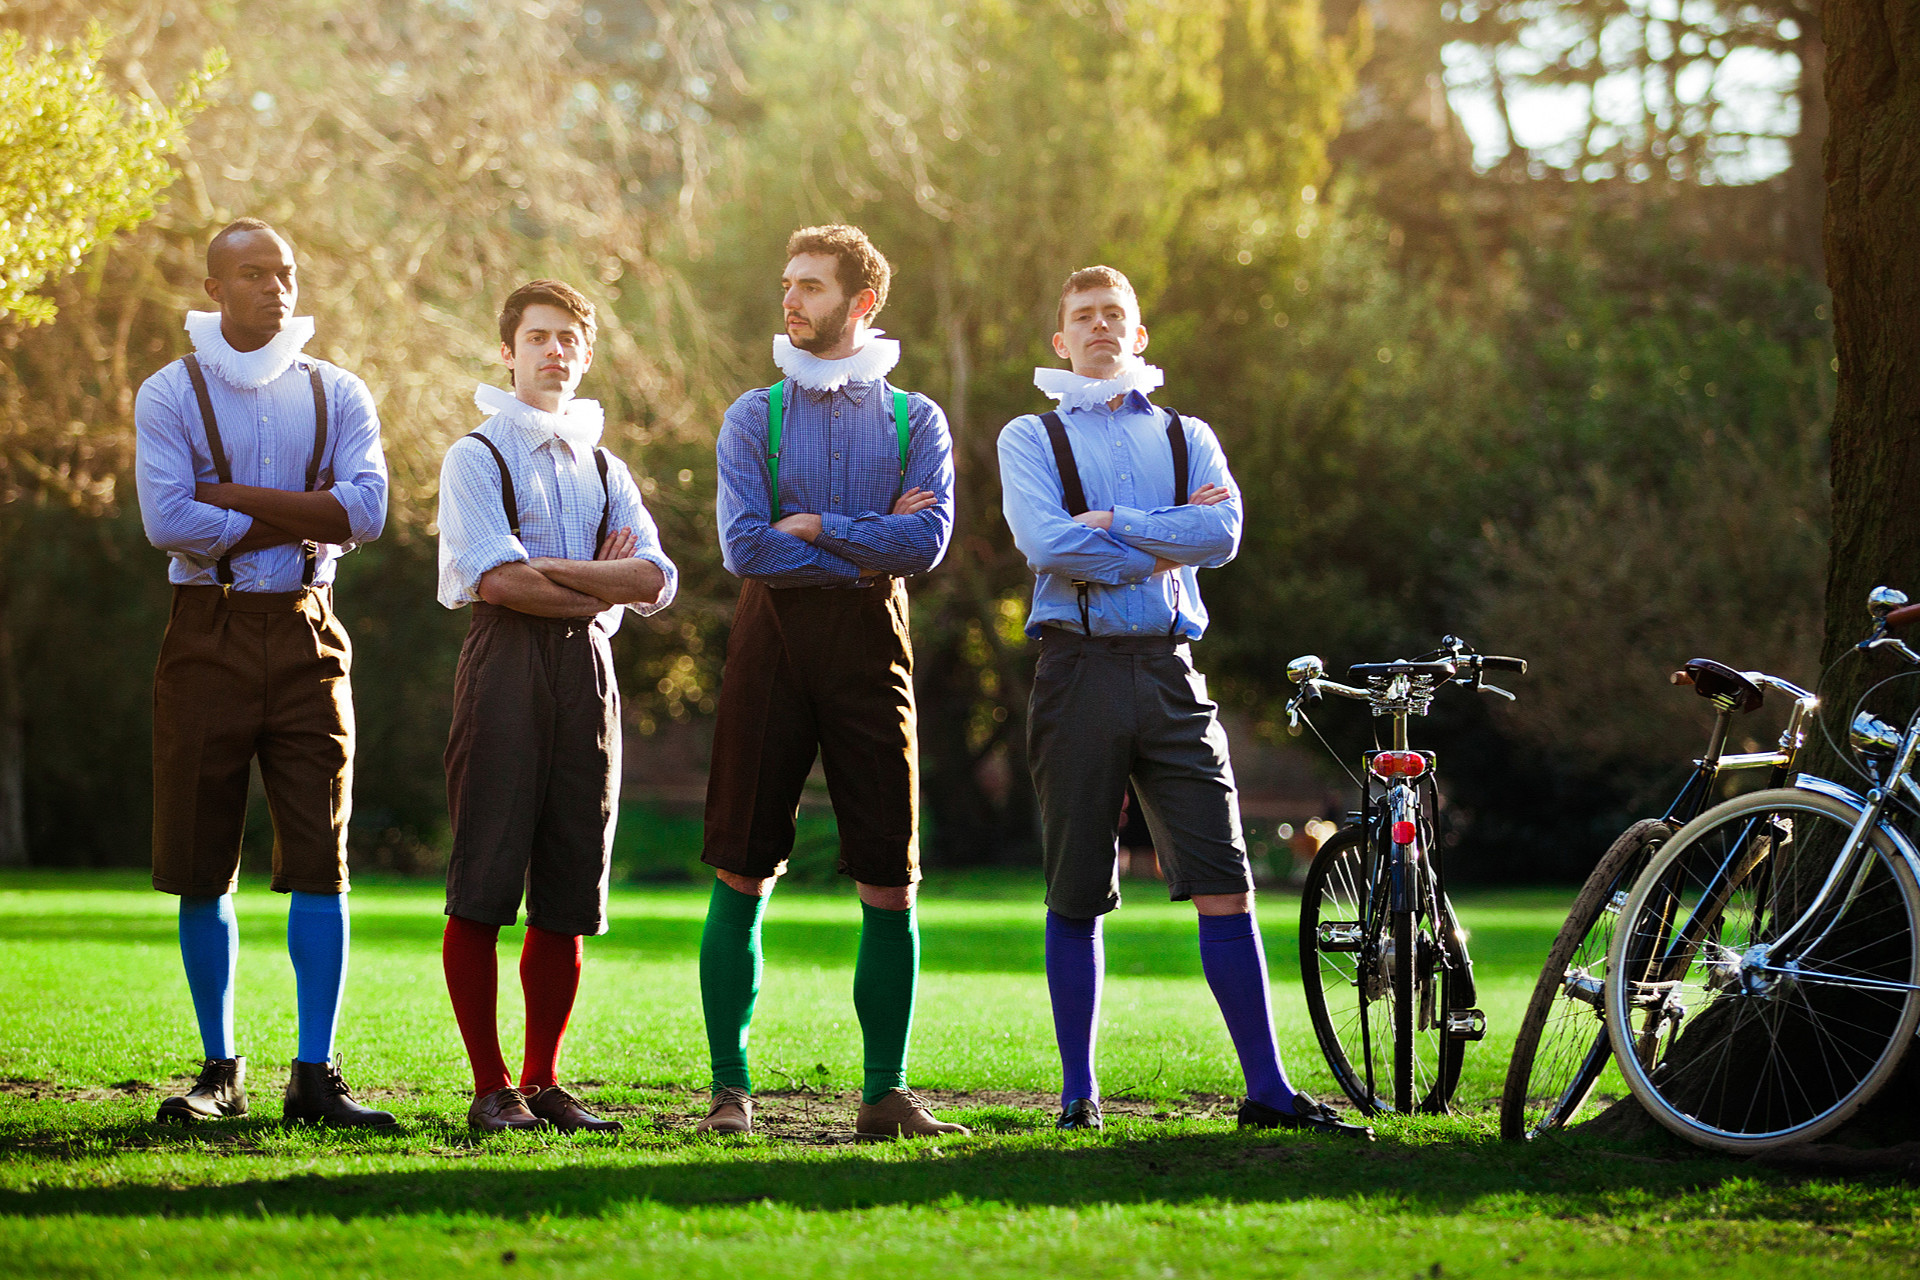 The HandleBards/Twelfth Night